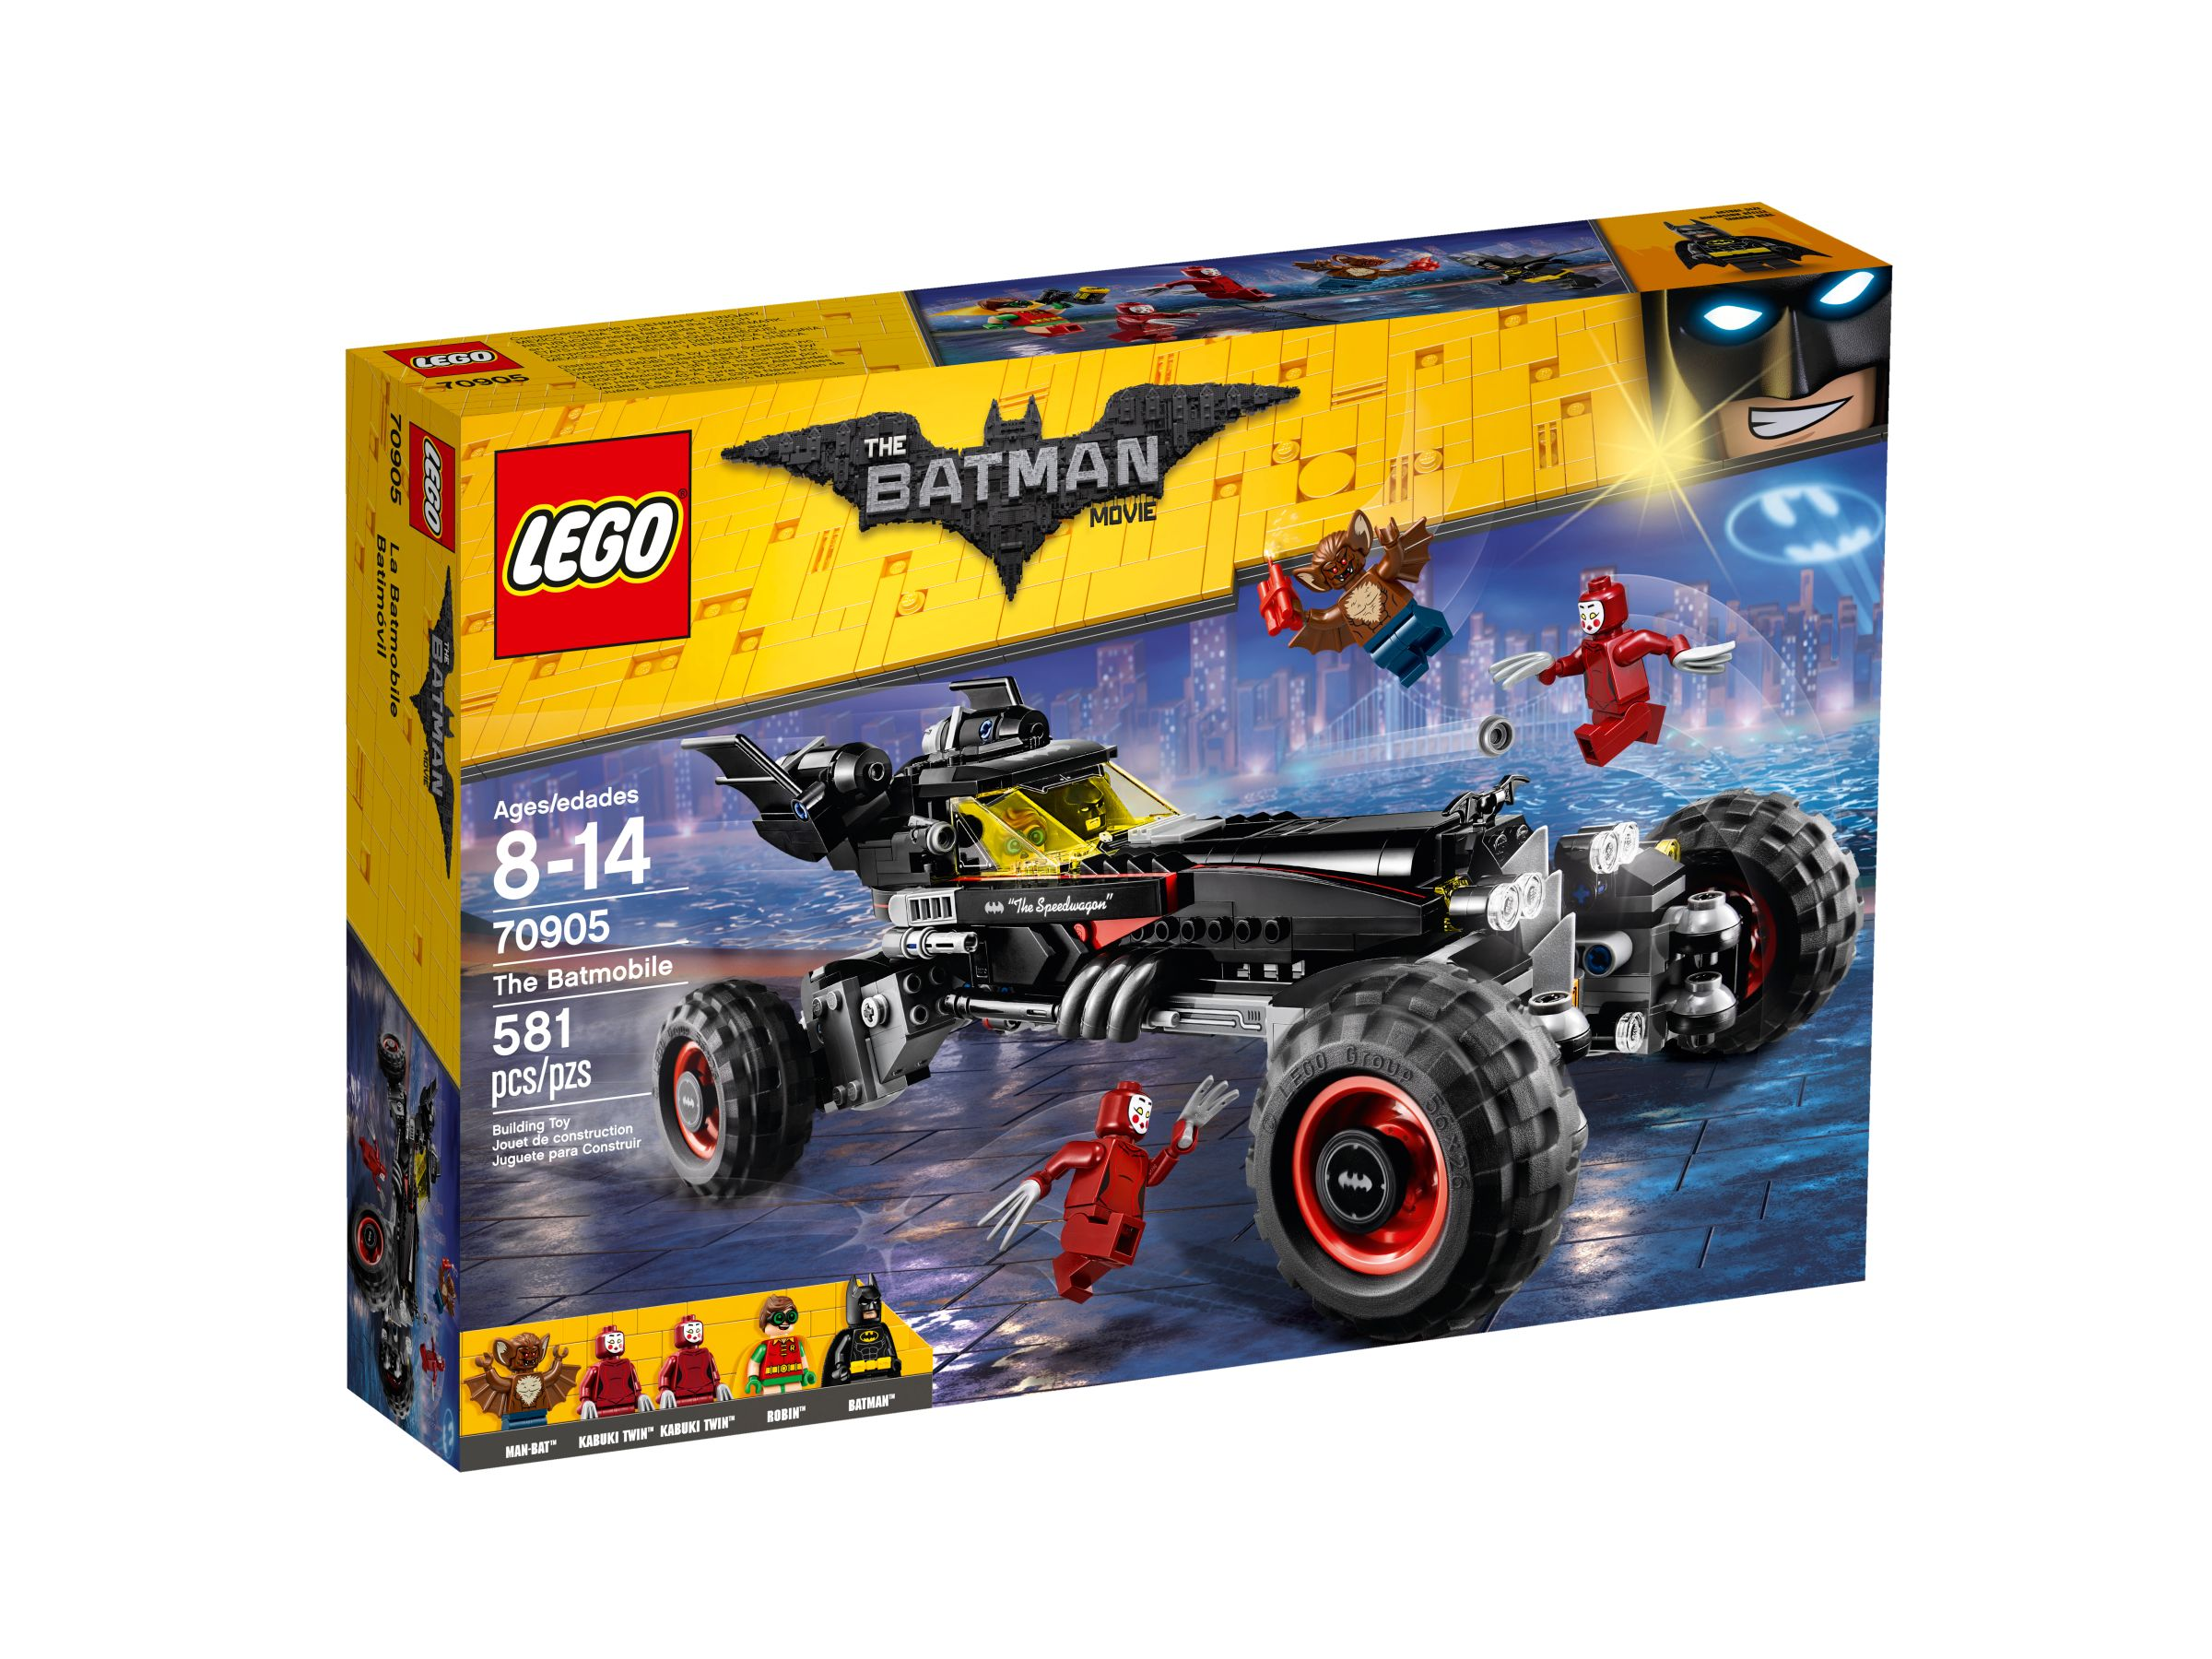 LEGO The LEGO Batman Movie 70905 Das Batmobil LEGO_70905_alt1.jpg